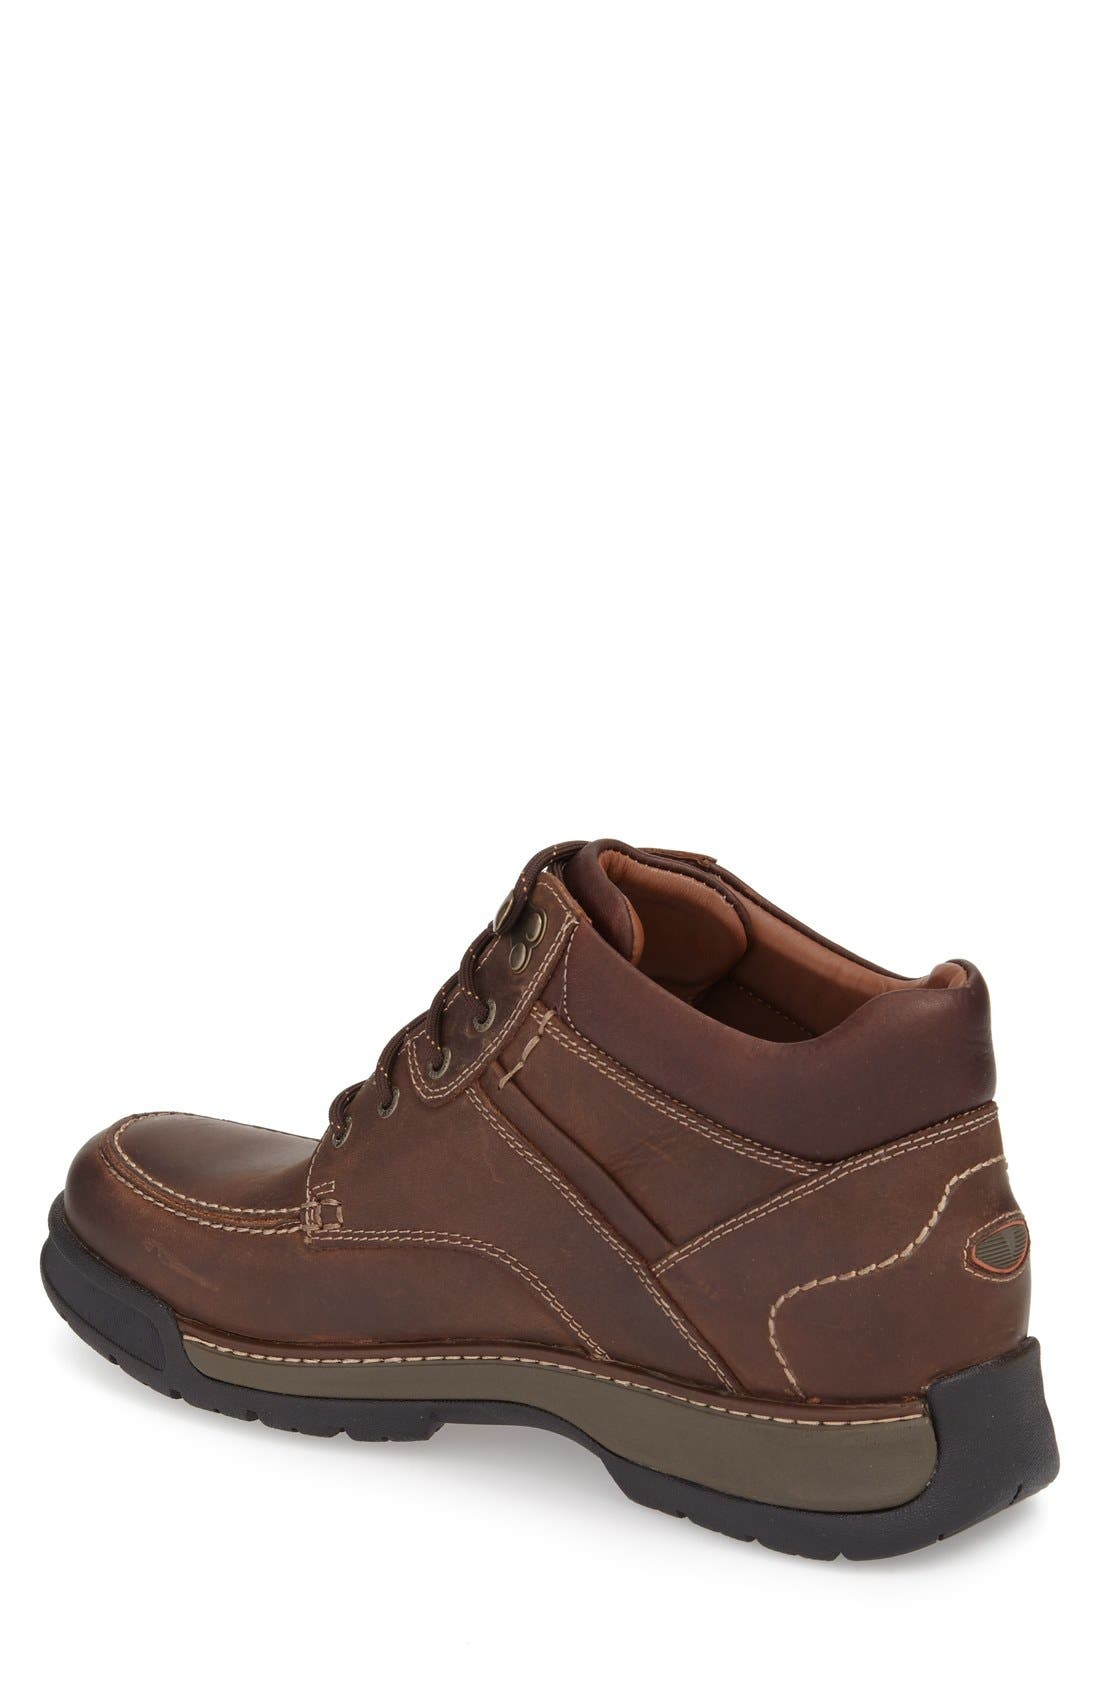 Waterproof Moc Toe Boot,                             Alternate thumbnail 2, color,                             Tan